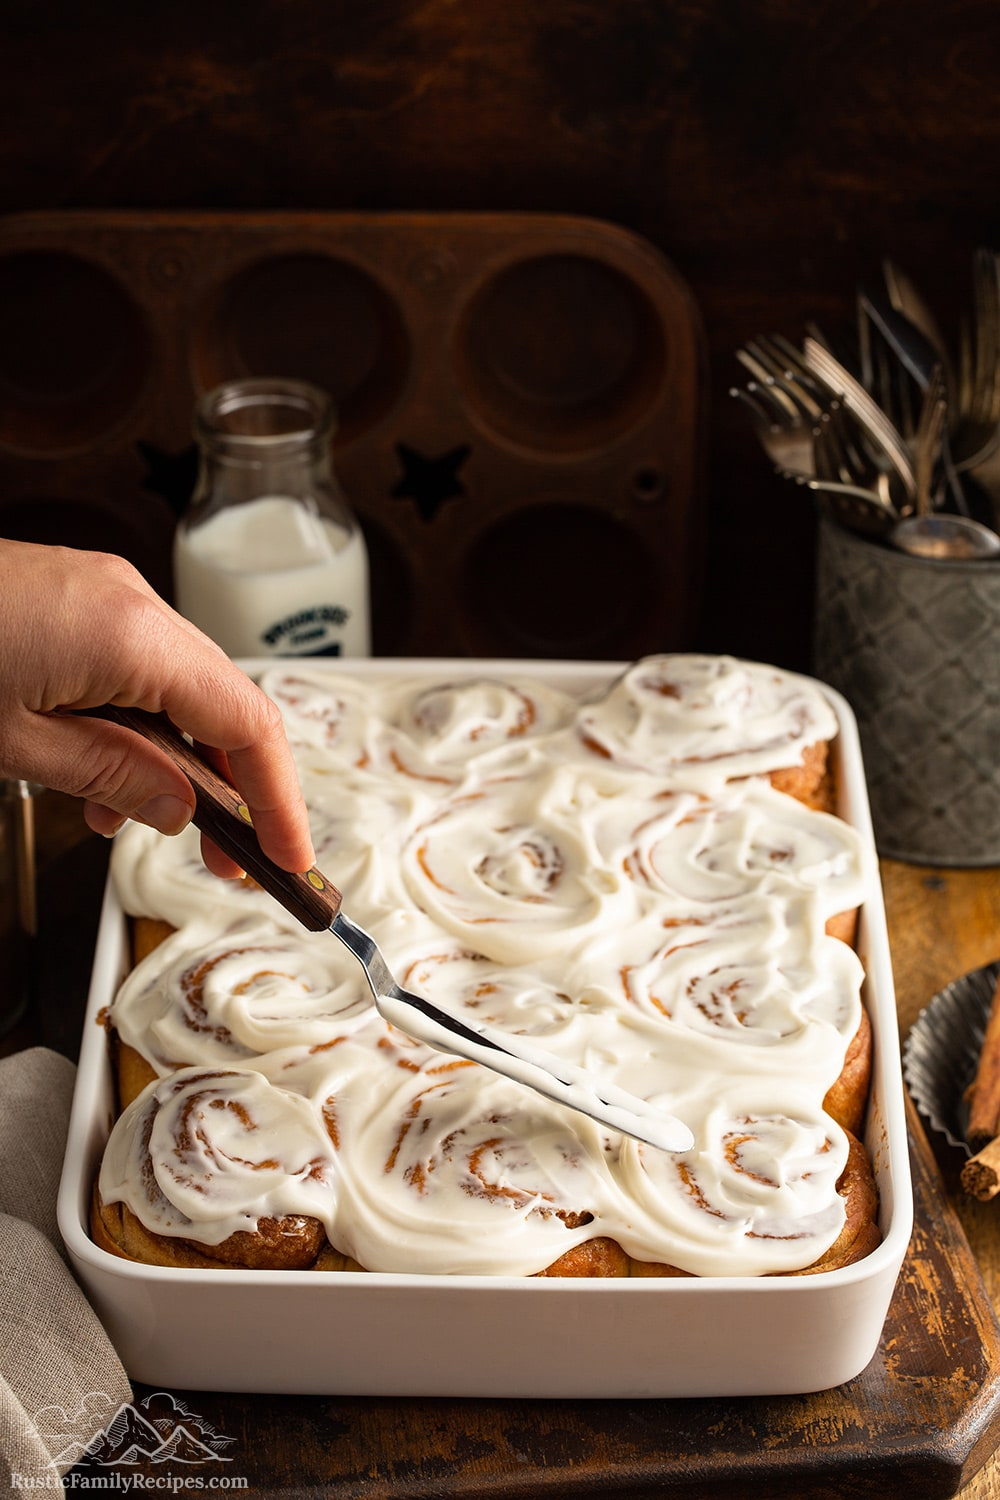 Cinnamon rolls being frosted in a white baking dish on a wooden table.